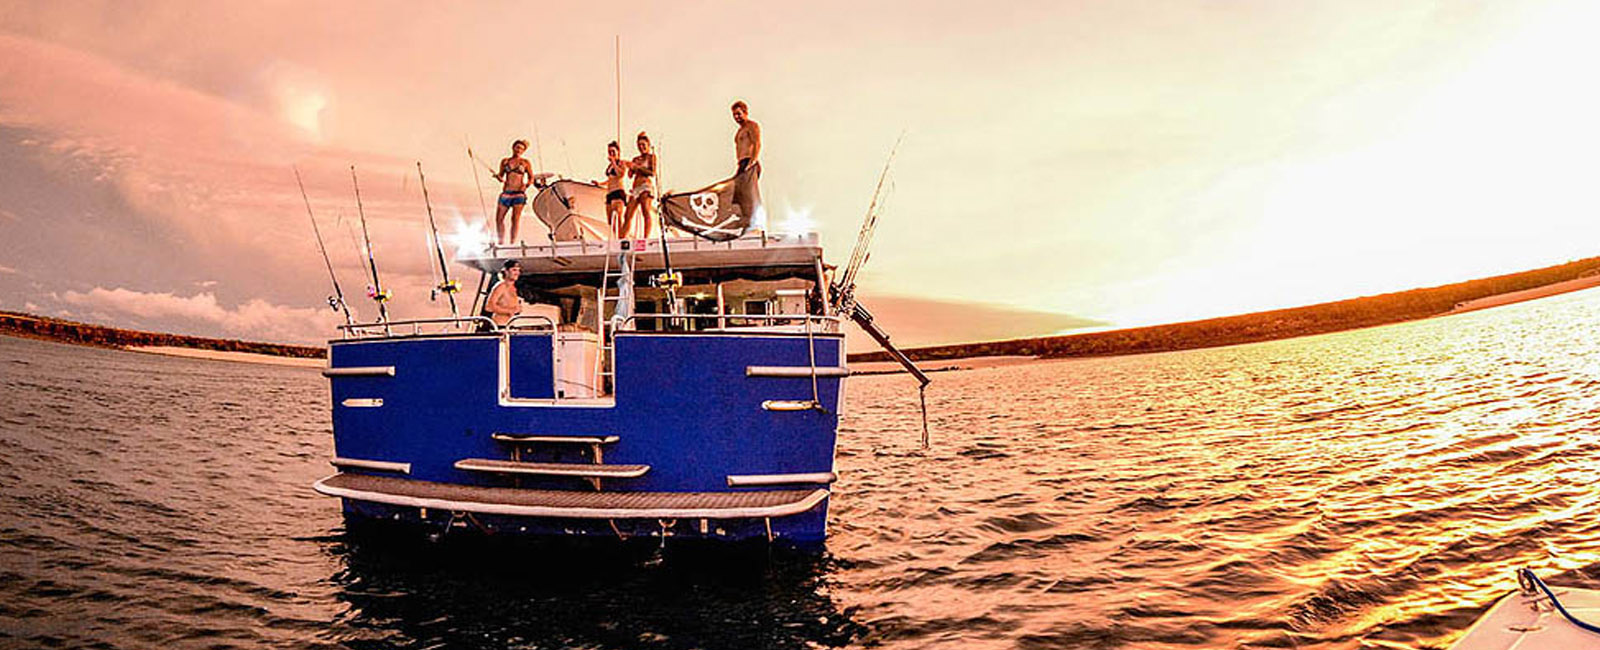 Glenalan-Abrolhos-Islands-fishing-charter-sunset-stern-view